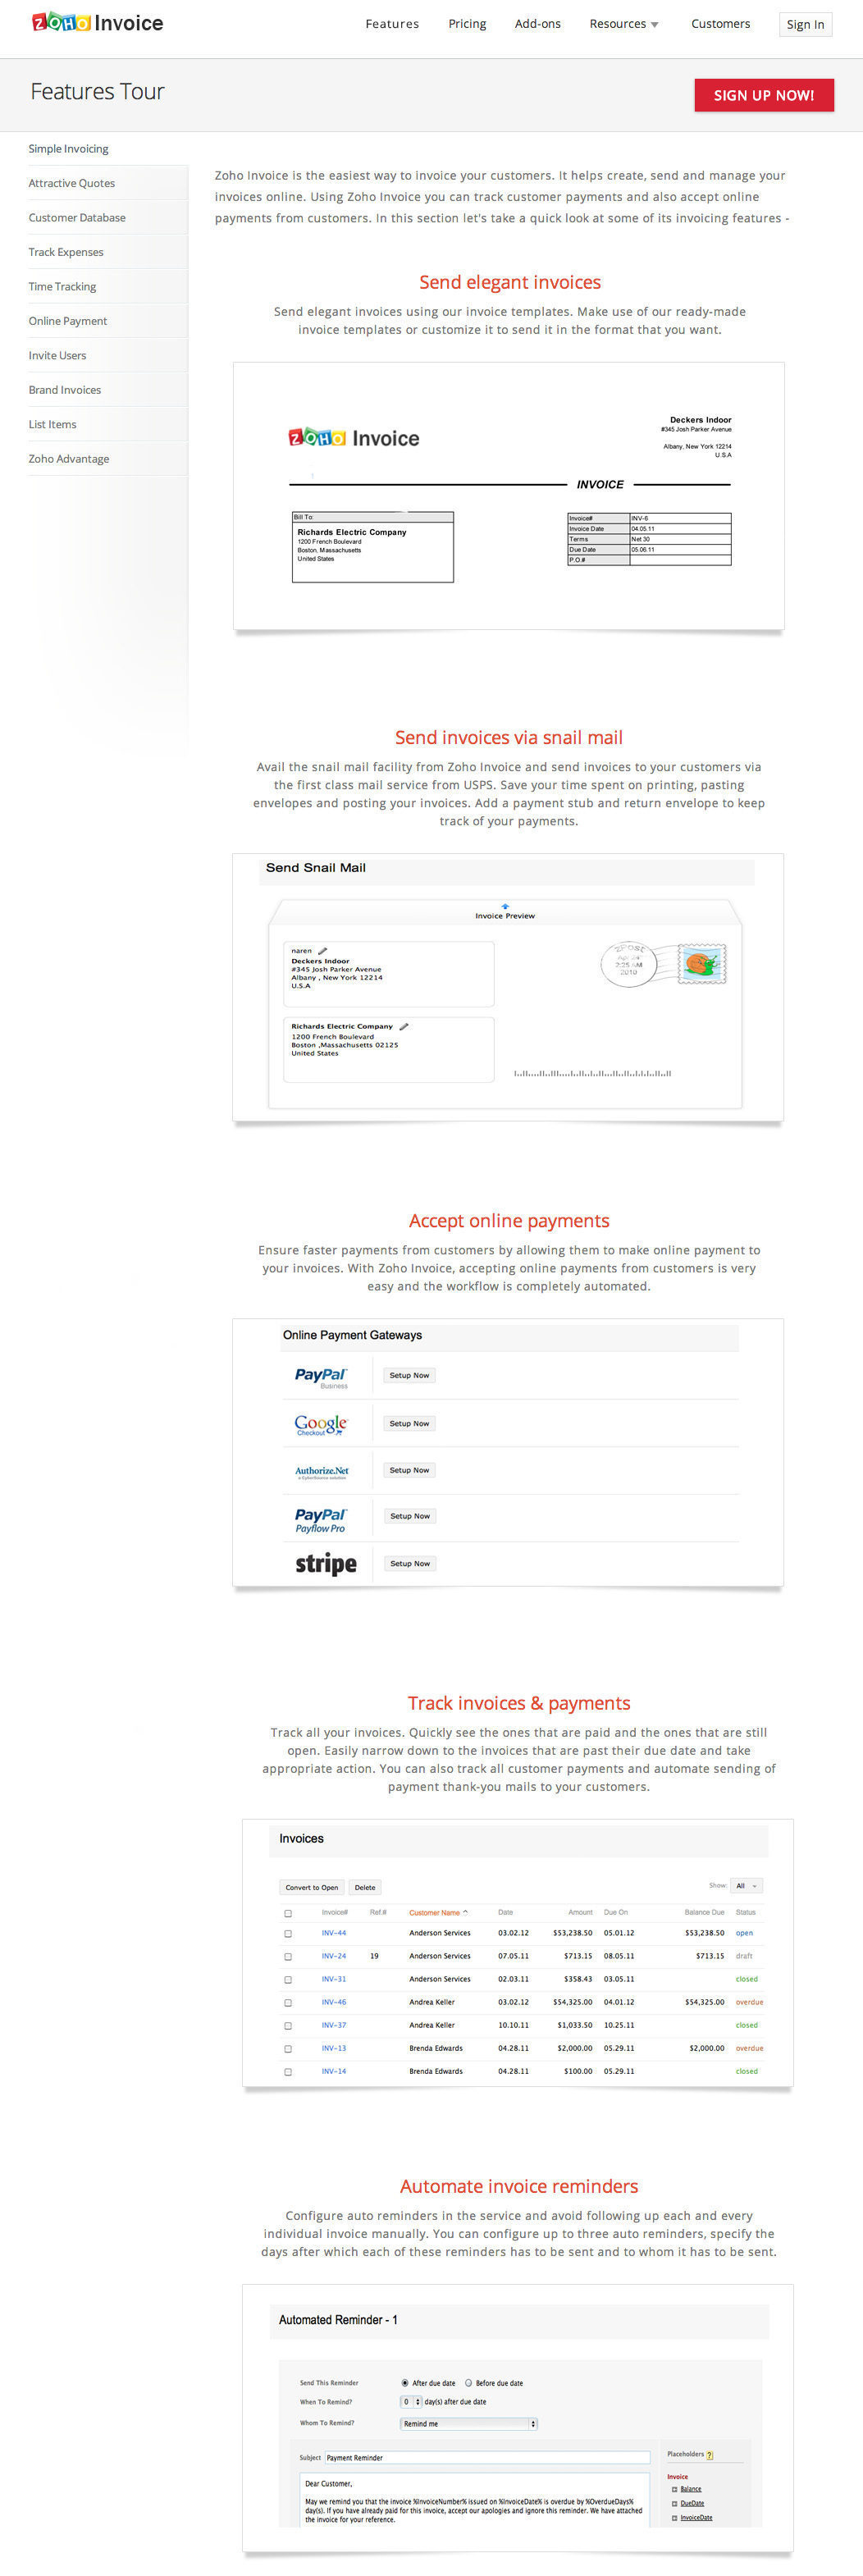 Ultrablogus  Terrific Top  Complaints And Reviews About Zoho Invoice With Fascinating Zoho Invoice Pricing Zoho Invoice  Simple Invoicing  With Beauteous Dhl Invoice Form Also Small Business Invoice Template Free In Addition Sample Letter For Past Due Invoices And Hospital Invoice As Well As Free Printable Invoices Templates Blank Additionally Chase Invoicing From Consumeraffairscom With Ultrablogus  Fascinating Top  Complaints And Reviews About Zoho Invoice With Beauteous Zoho Invoice Pricing Zoho Invoice  Simple Invoicing  And Terrific Dhl Invoice Form Also Small Business Invoice Template Free In Addition Sample Letter For Past Due Invoices From Consumeraffairscom